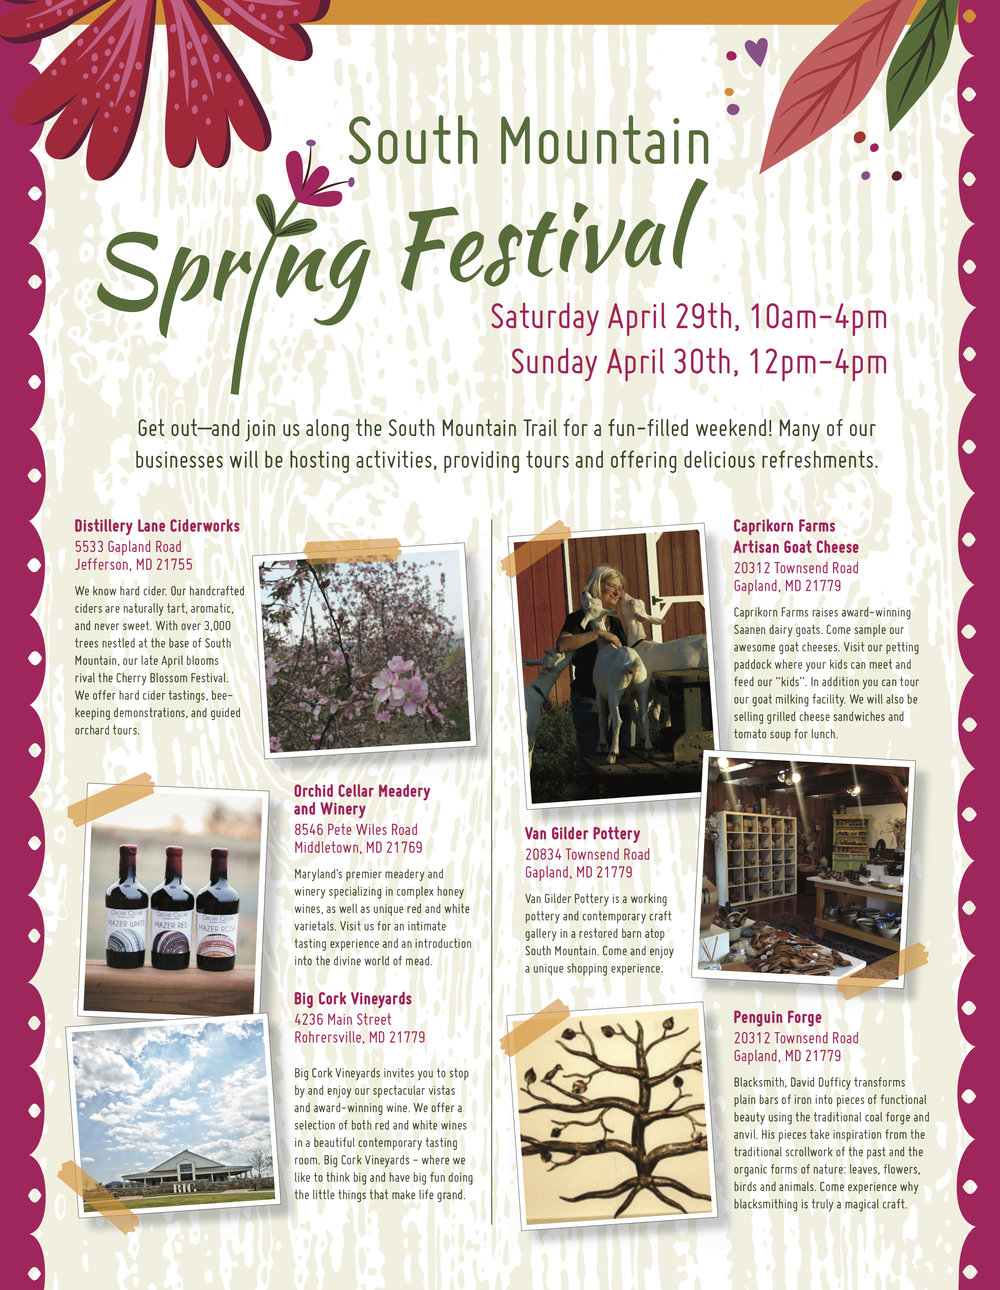 South Mountain Spring Festival